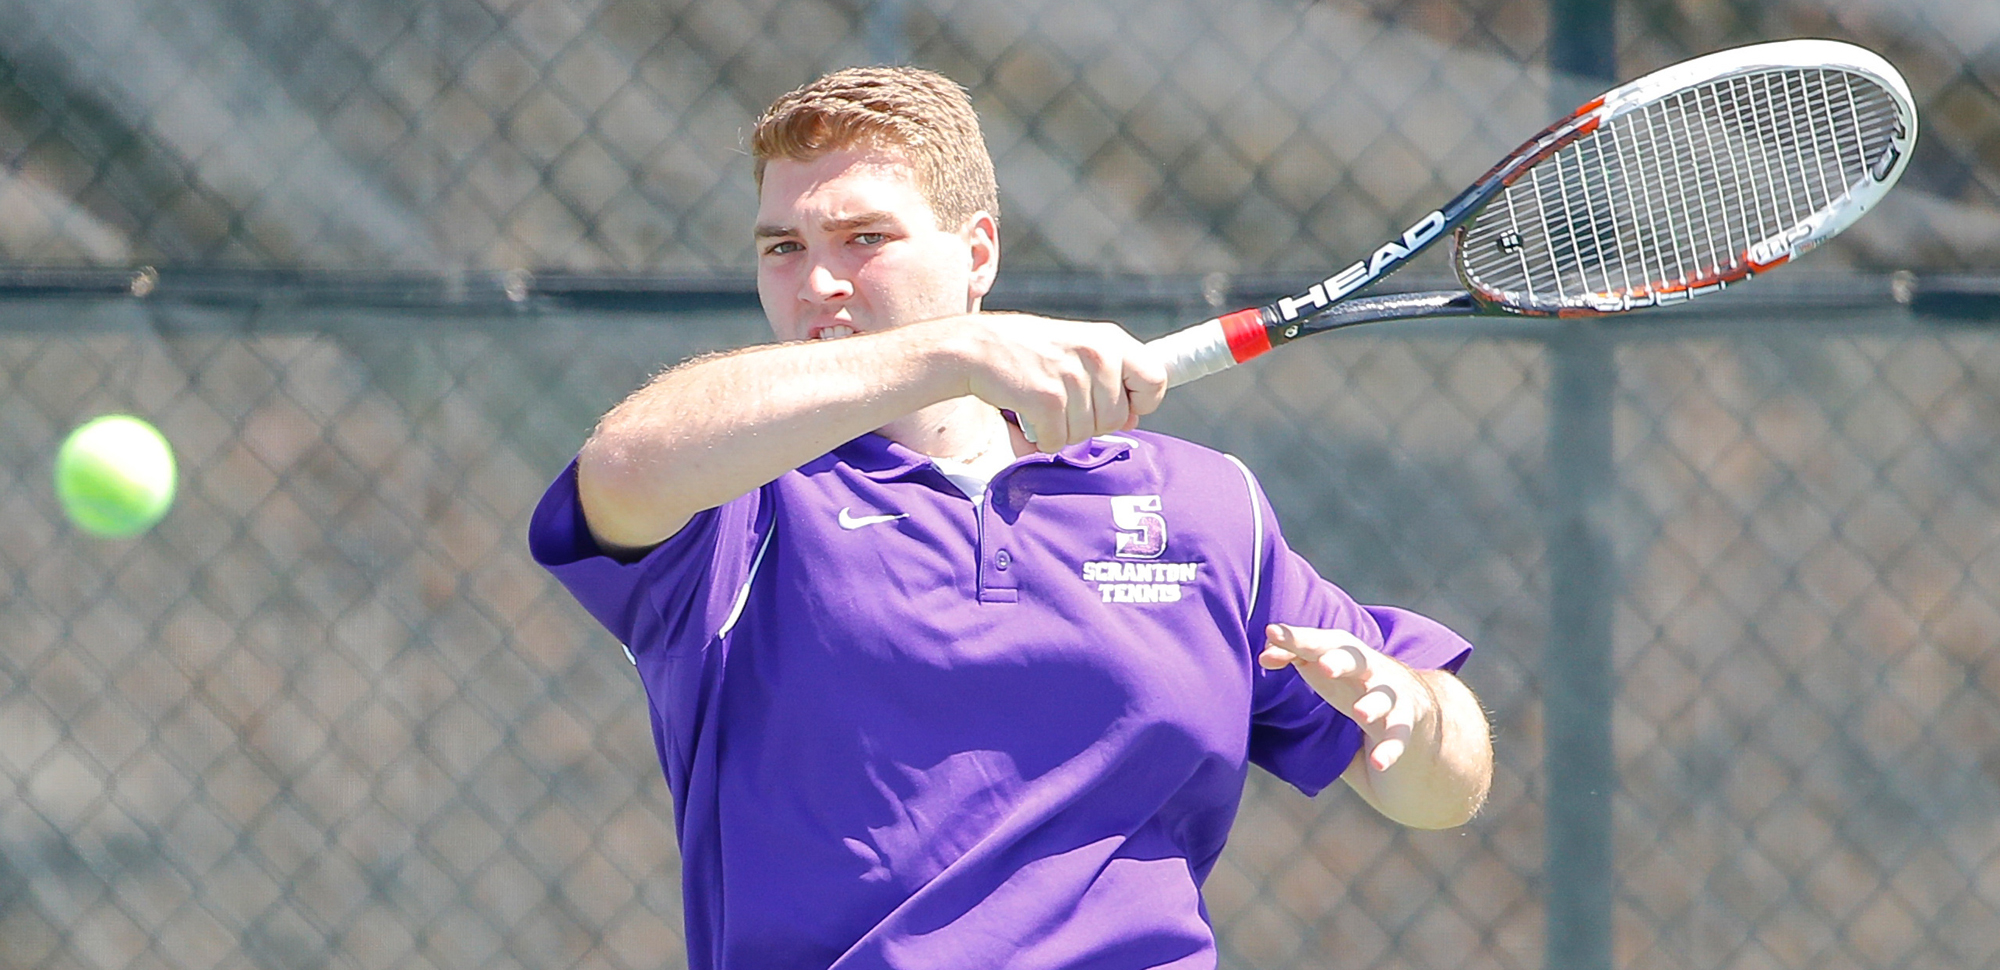 Senior Matt Prendergast won in singles on the day, as he and fellow senior Michael Pottieger were honored before Sunday's match with Juniata at Royal Courts.